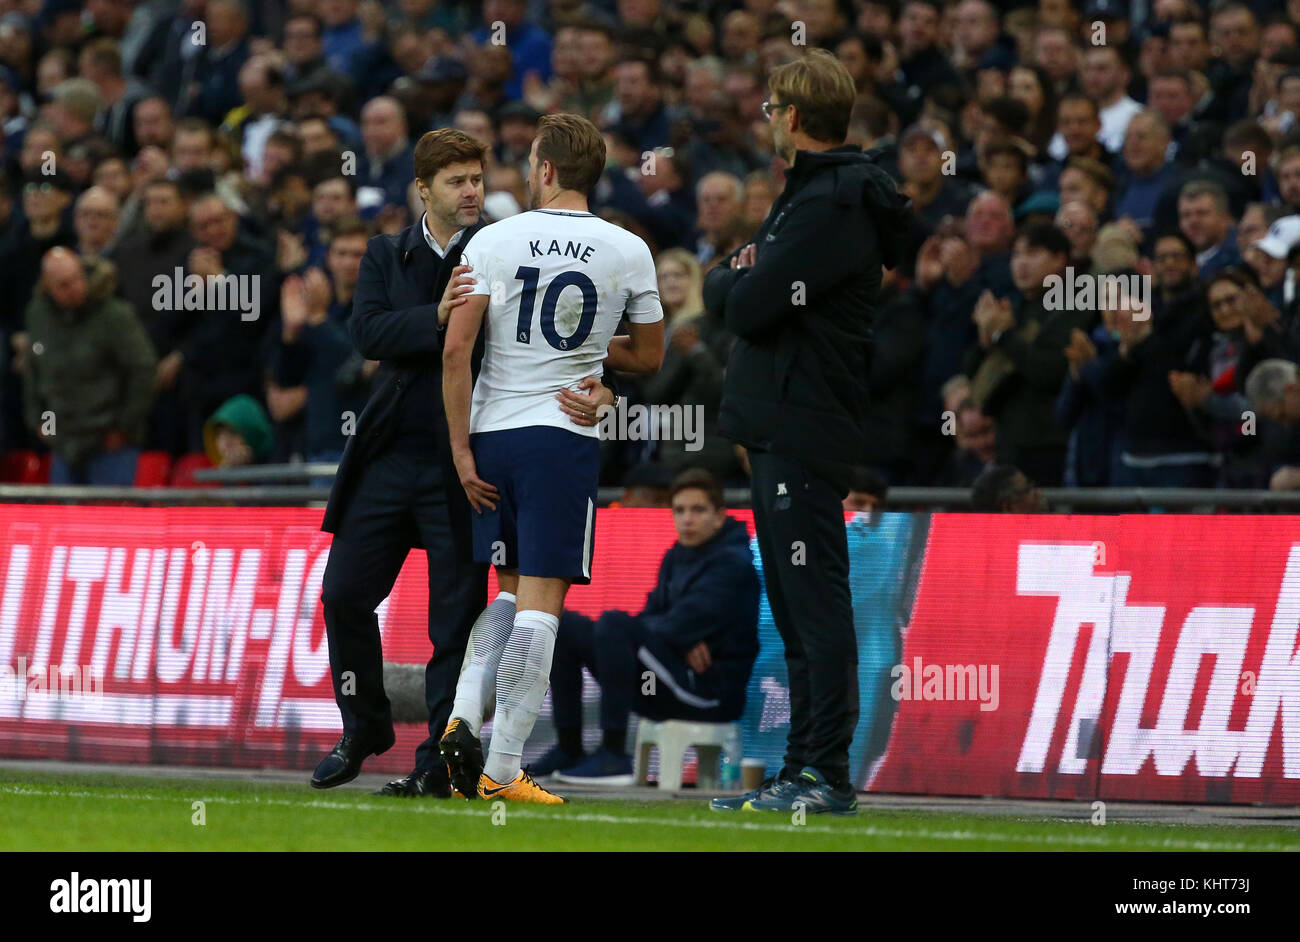 Tottenham manager Mauricio Pochettino congratulates Harry Kane as he is substituted during the Premier League match - Stock Image